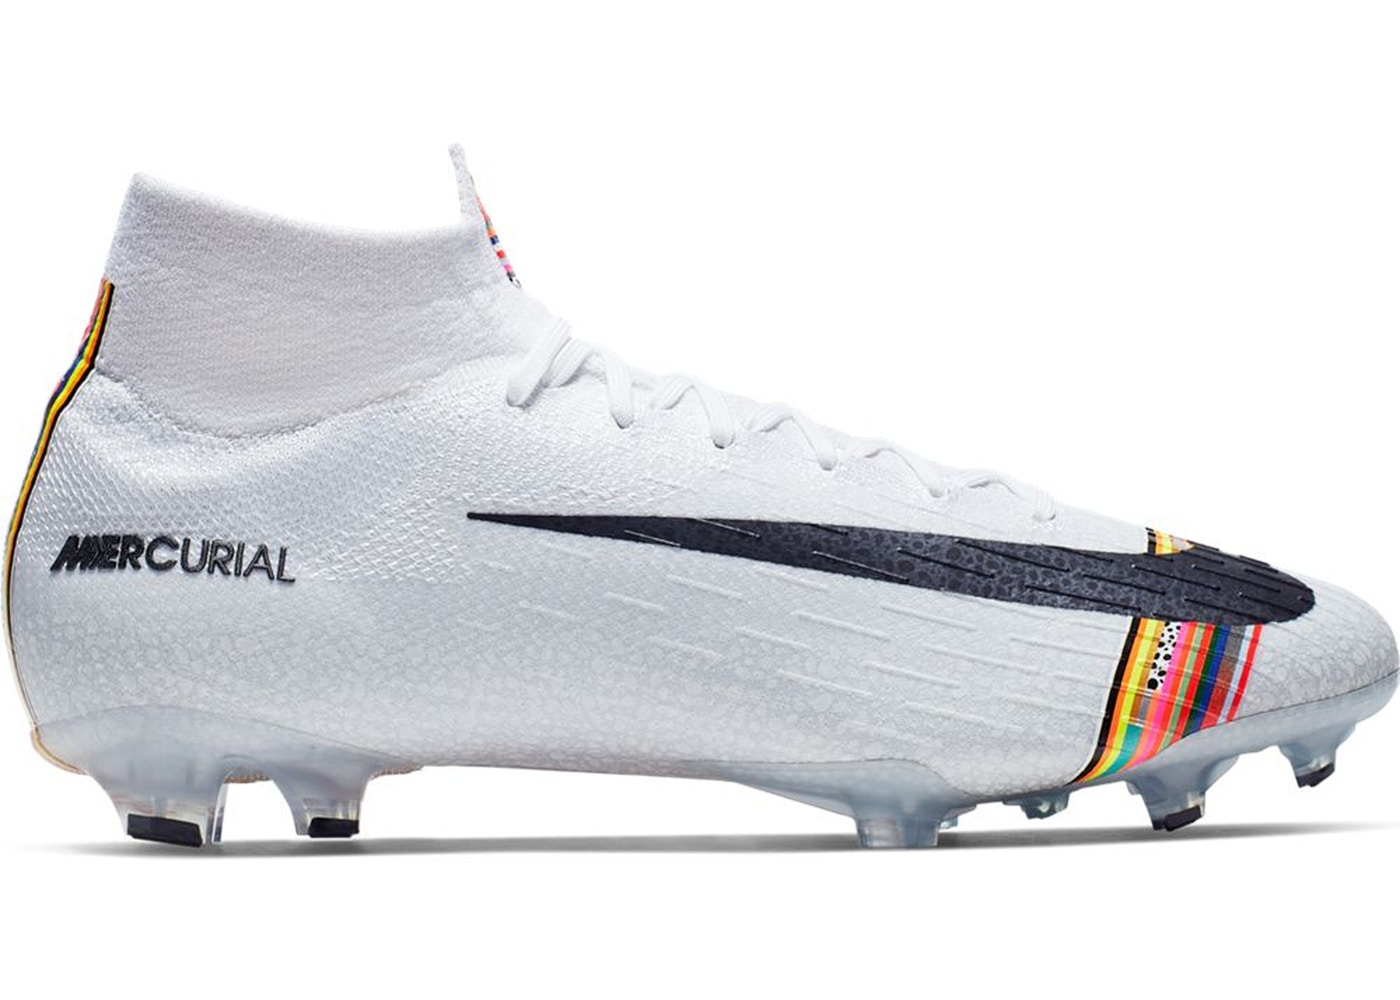 new arrival cheap for sale entire collection Nike Mercurial Superfly 360 Elite FG Lvl Up Pure Platinum